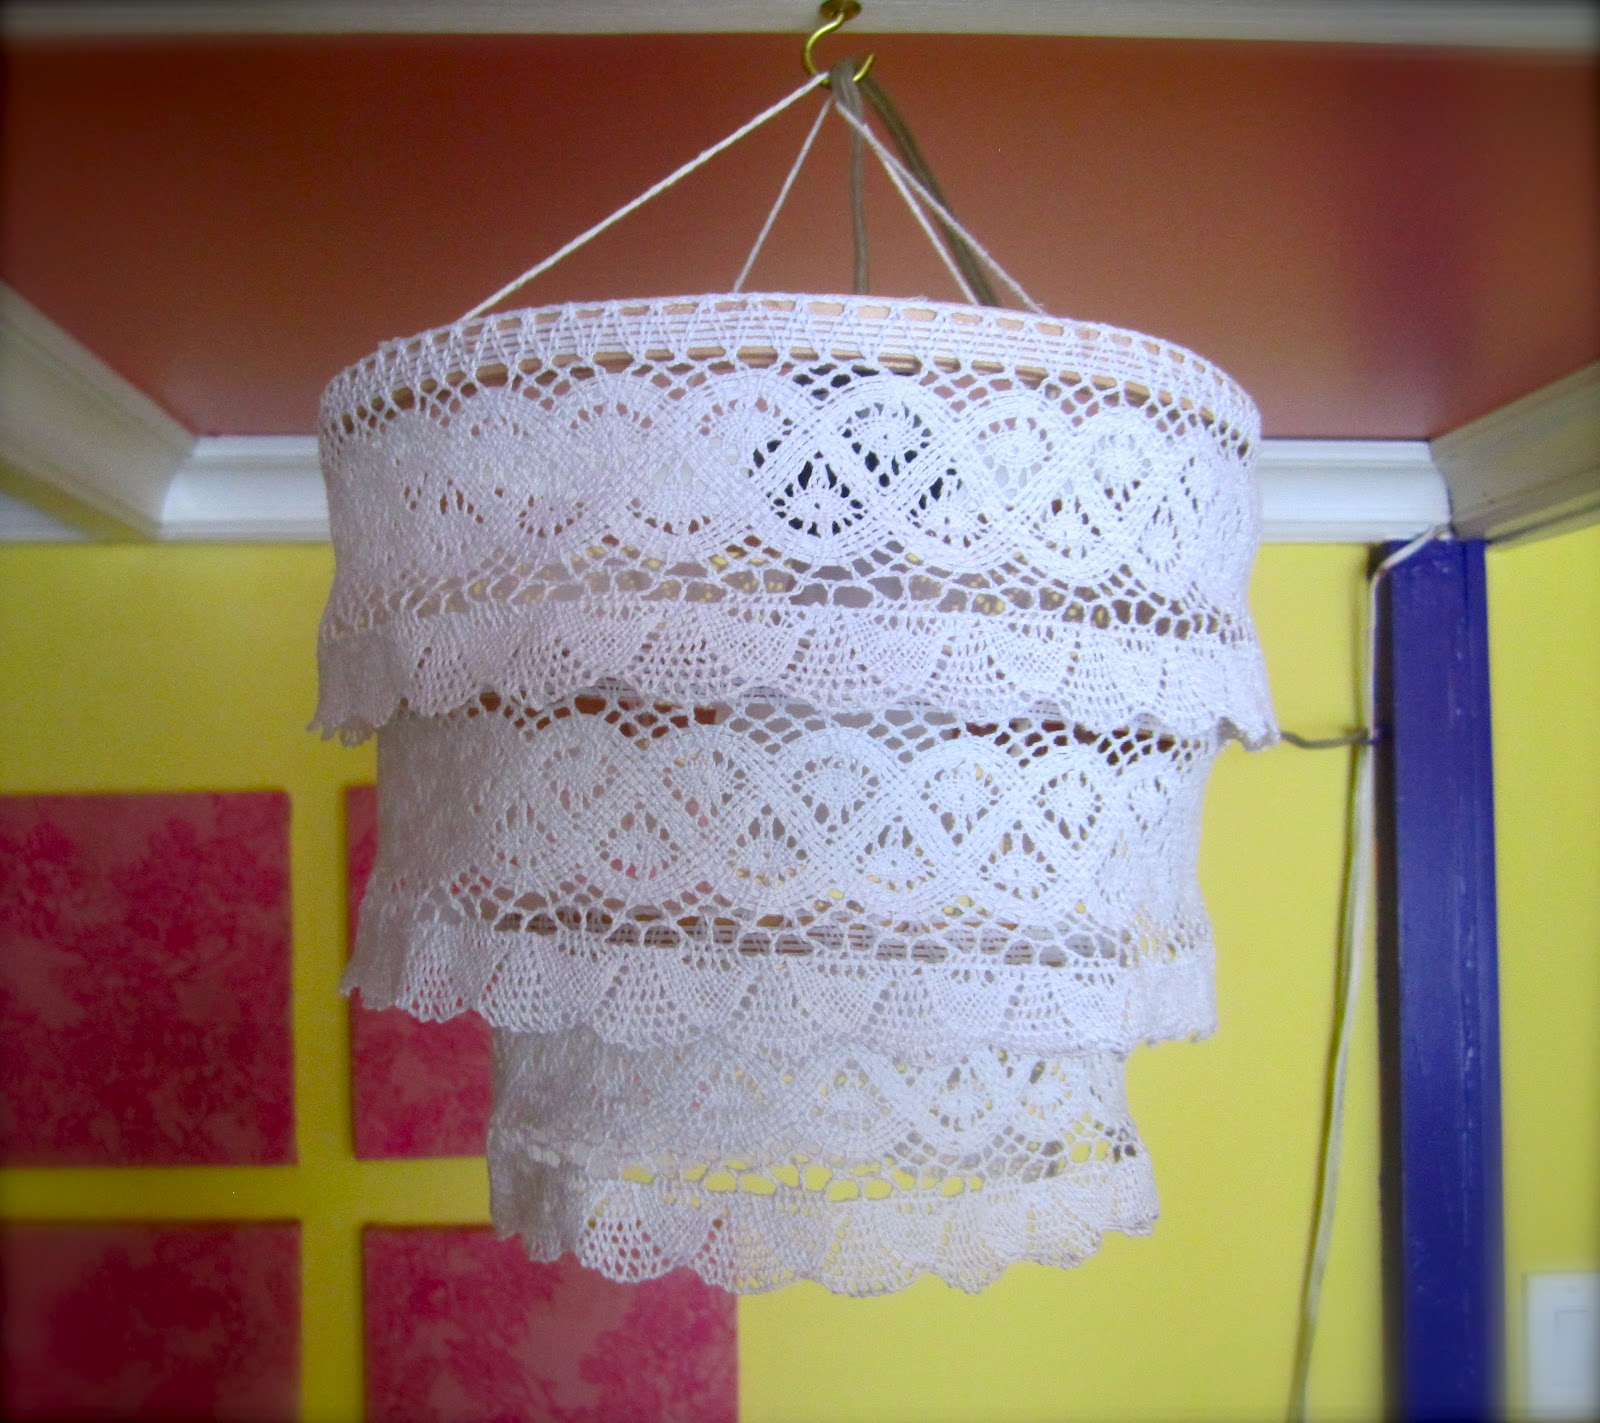 Recreational crafting diy lace chandelier diy lace chandelier arubaitofo Choice Image